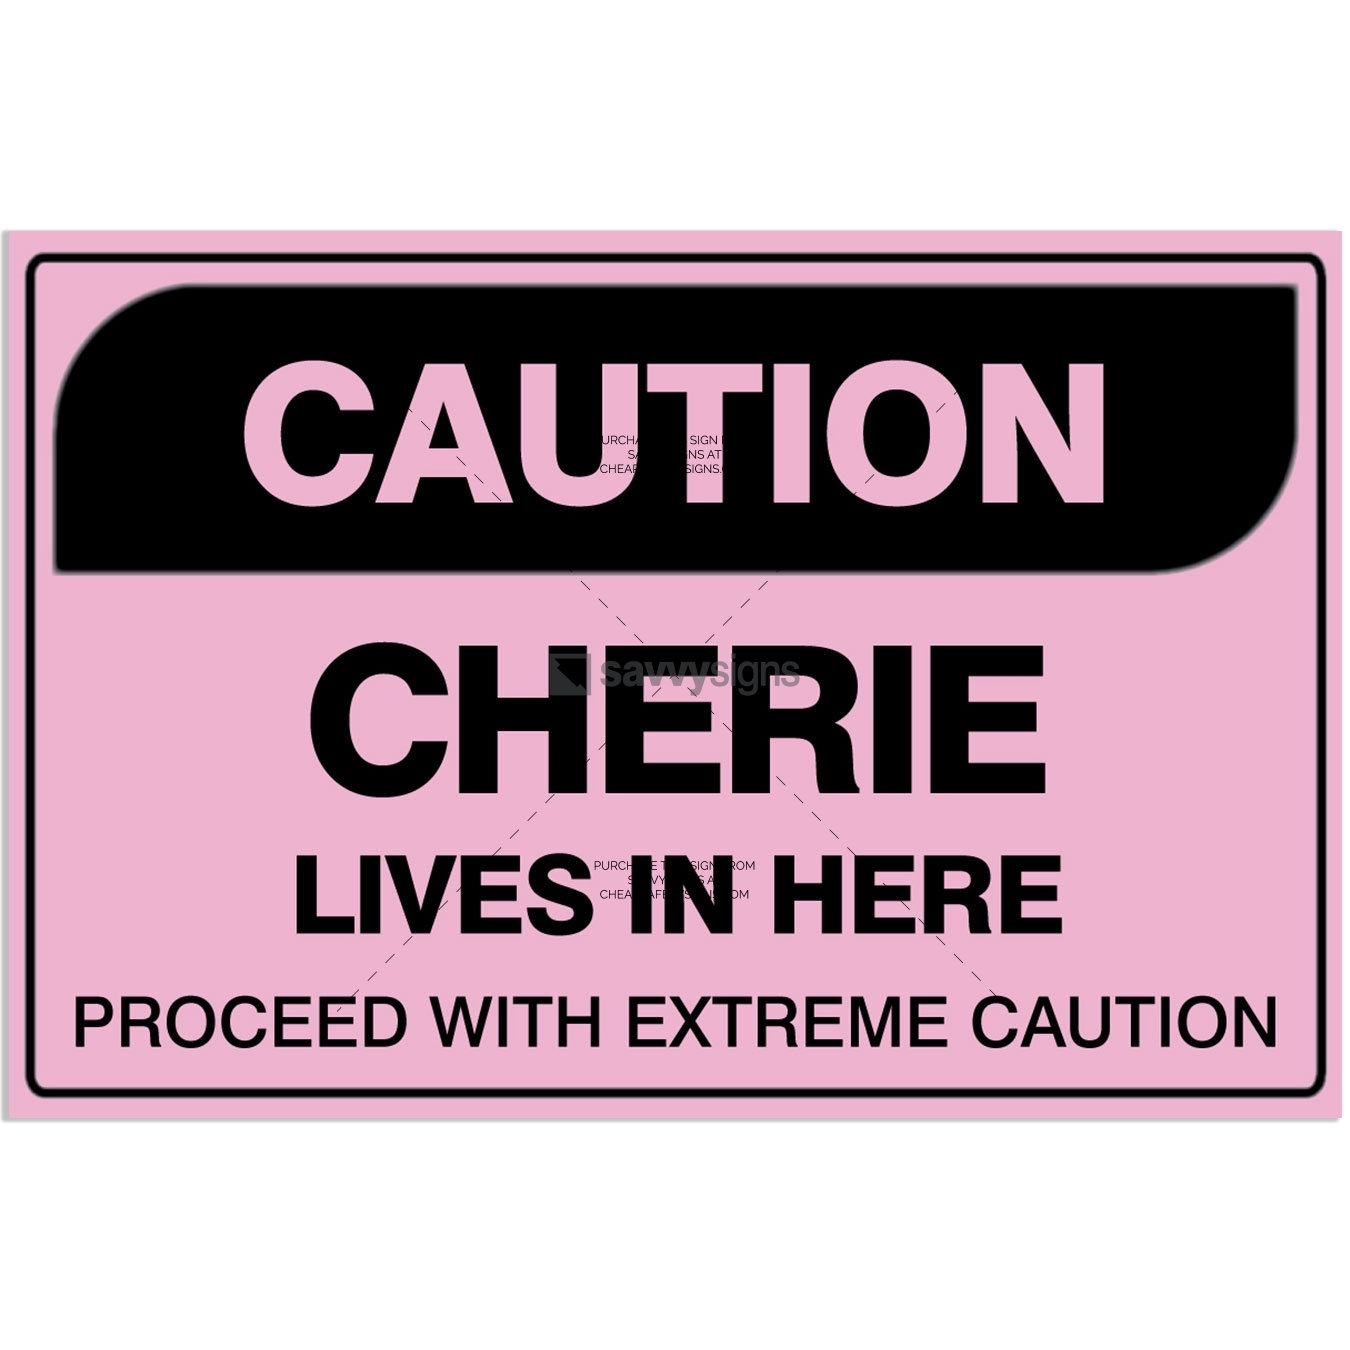 SSFUN3042-Caution-Cherie-Kids-Bedroom-Door-Sign_Savvy-Signs_v1